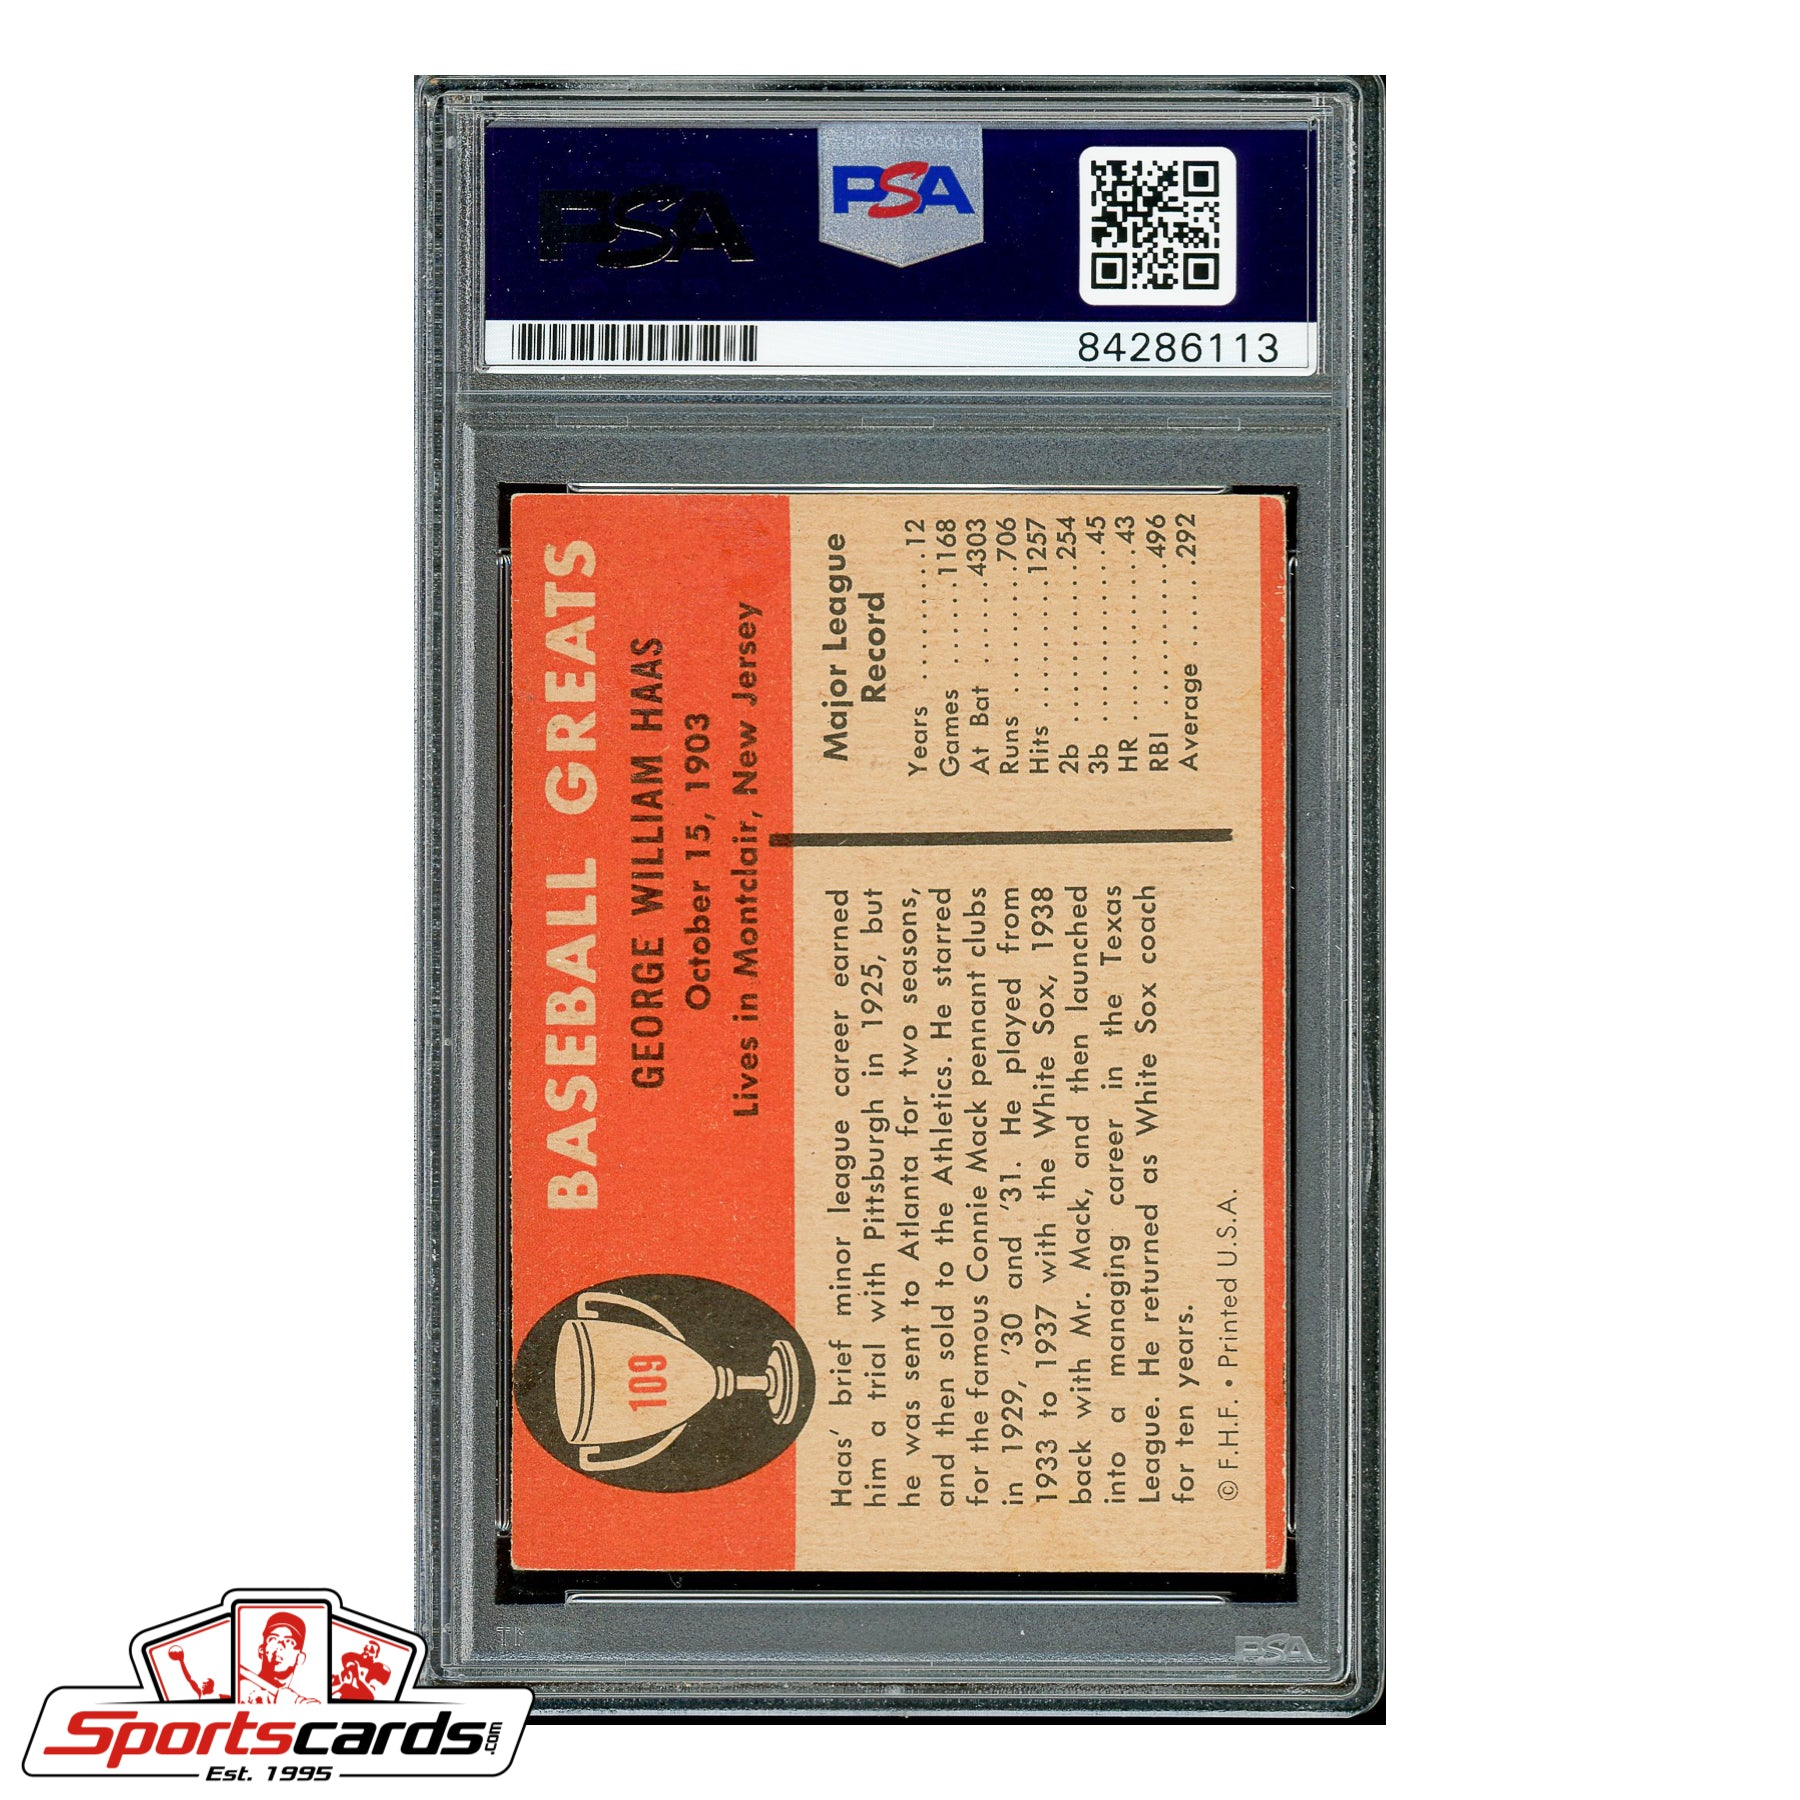 Mule Haas Signed Auto 1961 Fleer Card - PSA/DNA